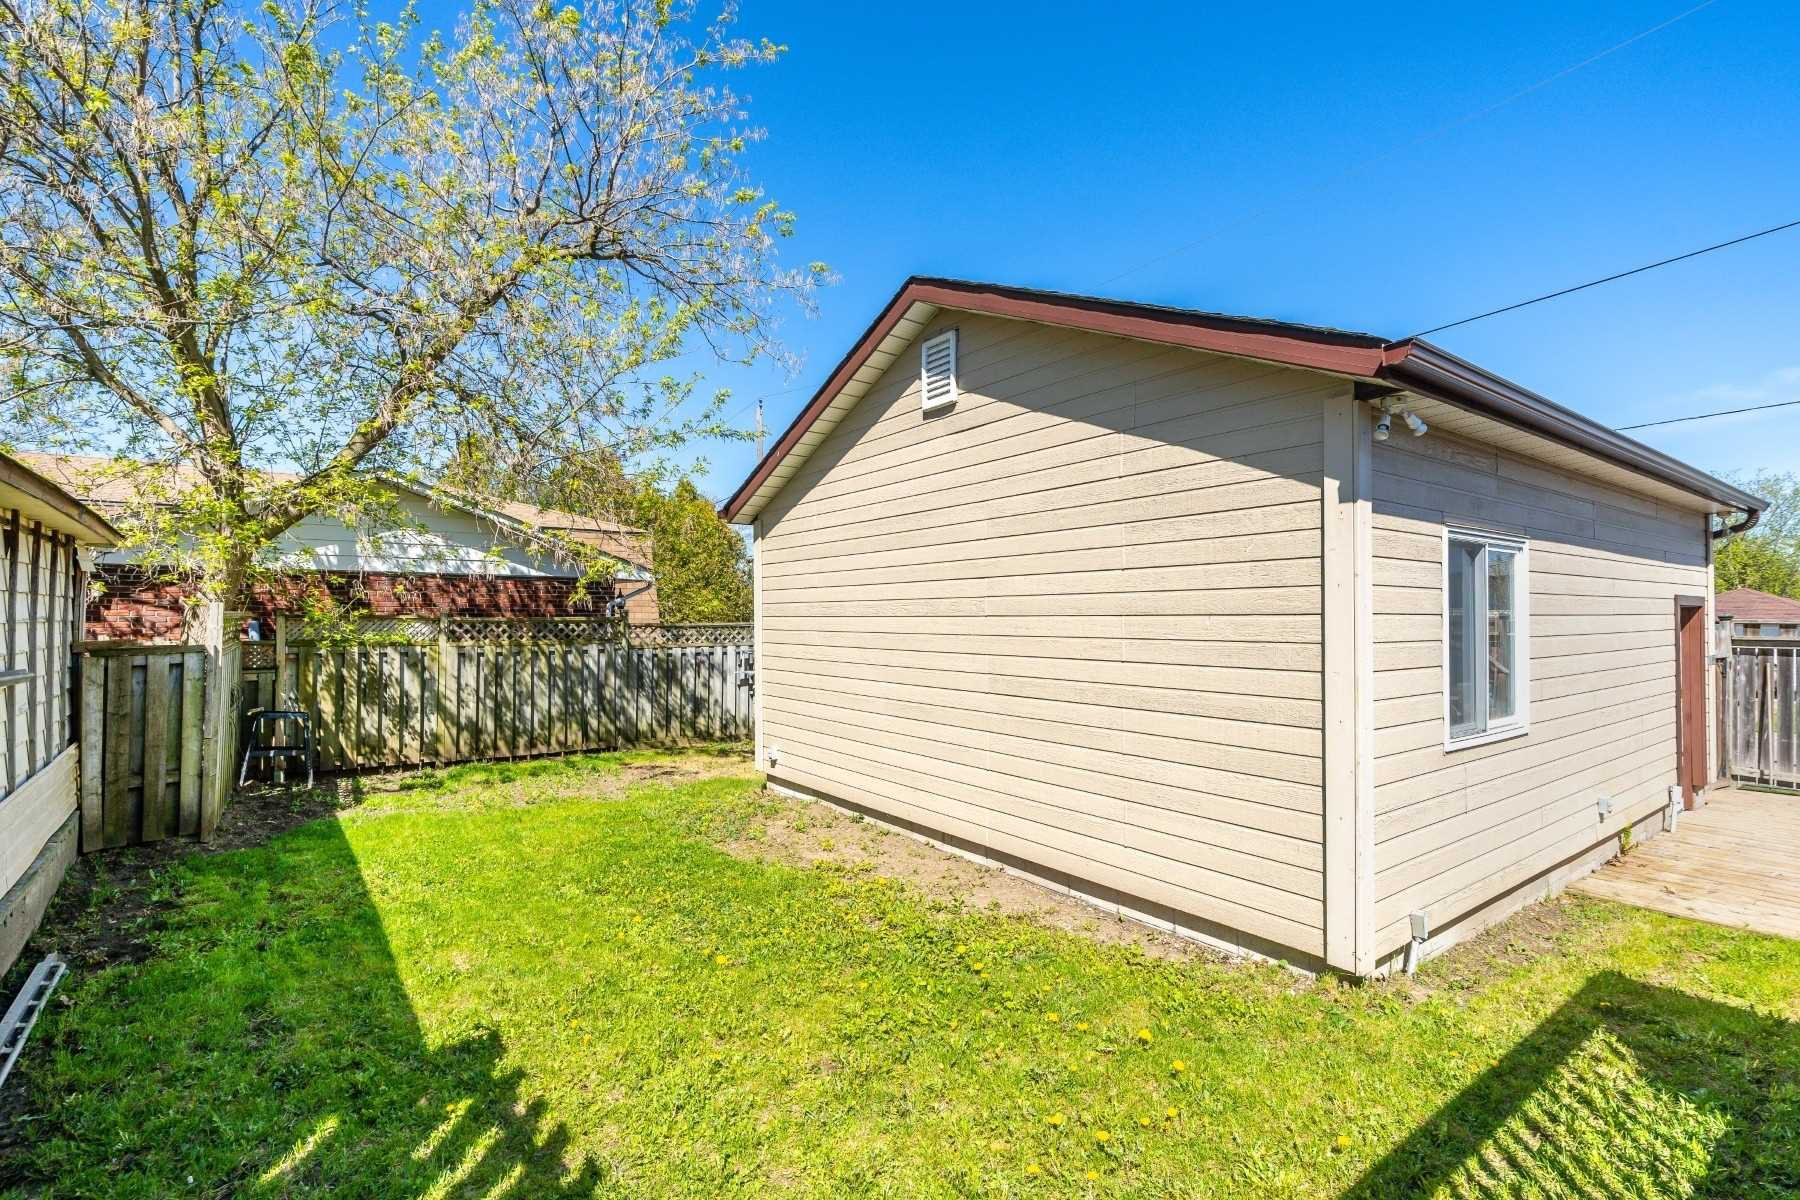 Photo 10: Photos: 40 Eastlawn Street in Oshawa: Donevan House (Bungalow) for sale : MLS®# E4769026